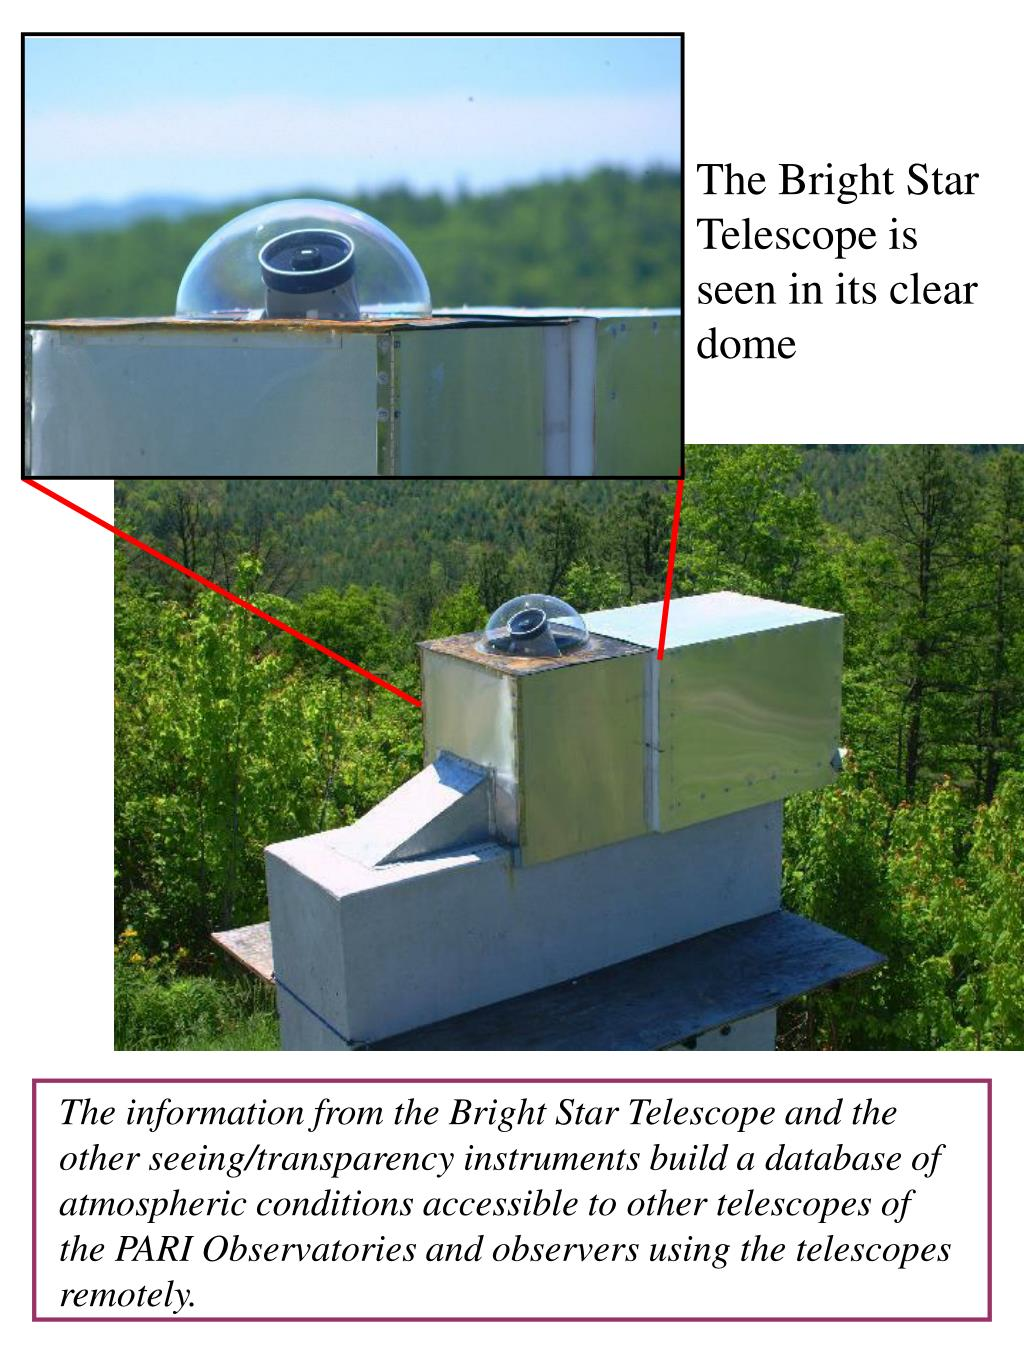 The Bright Star Telescope is seen in its clear dome